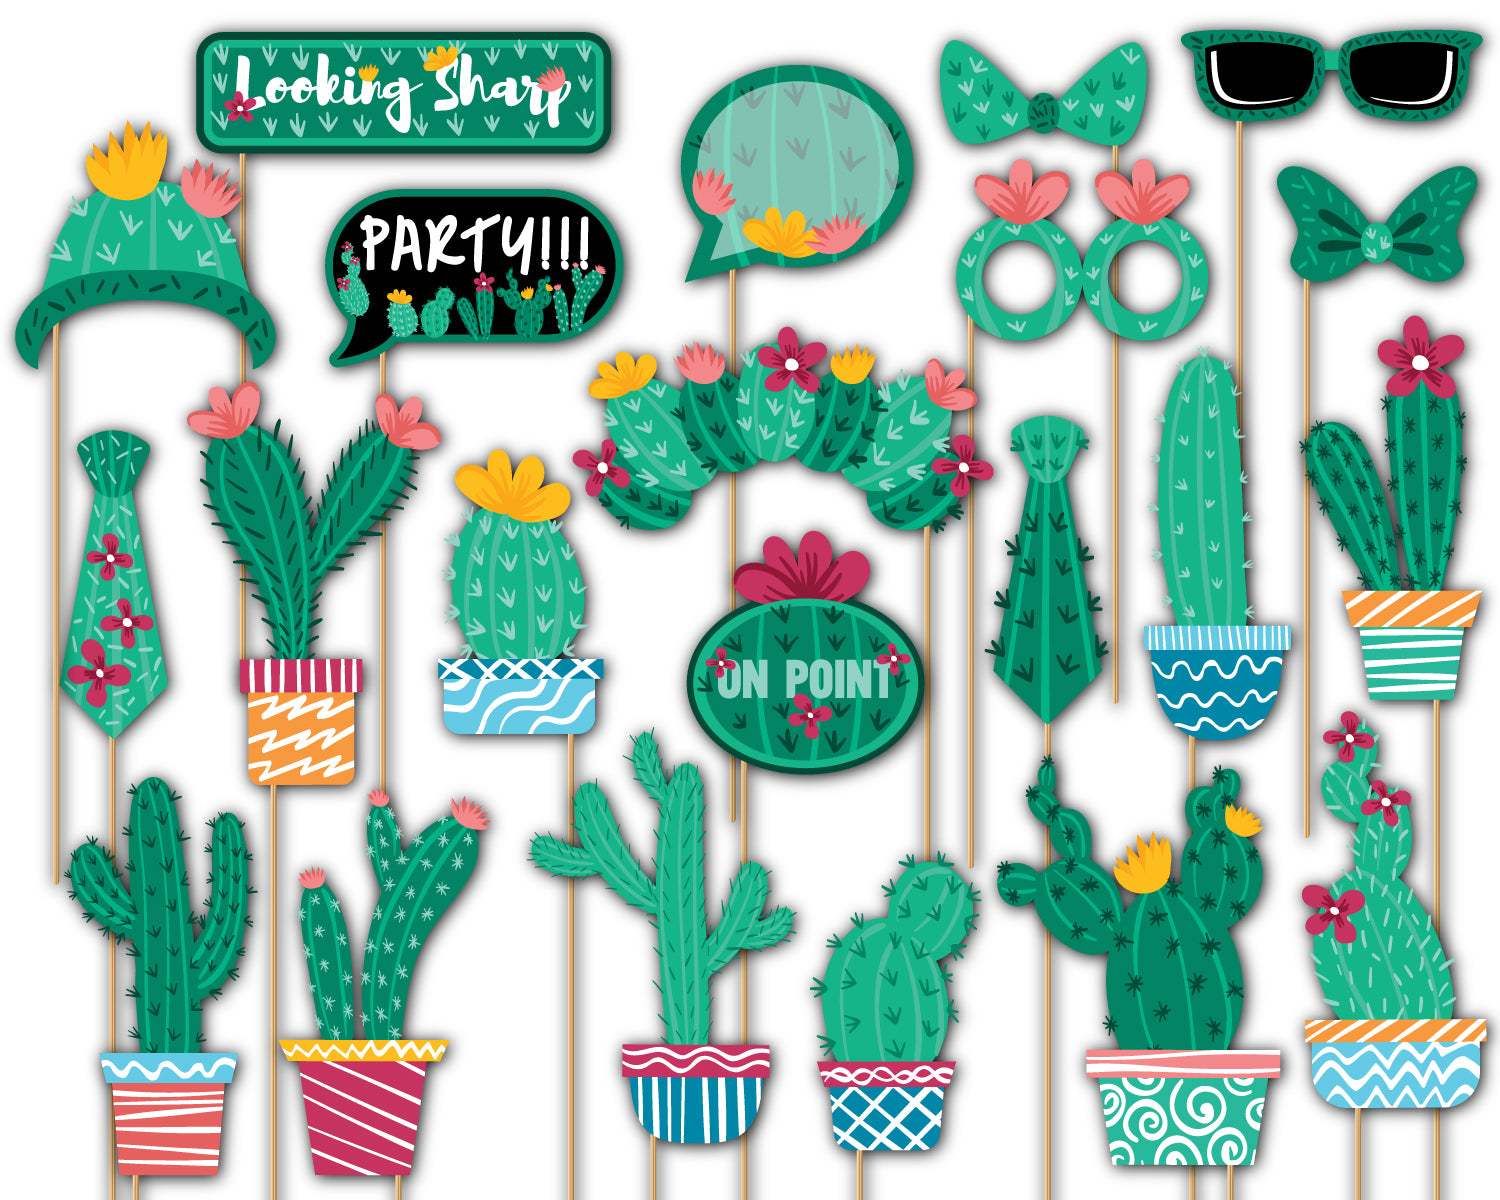 Cactus Photo Booth Props 20pcs Assembled - BirthdayGalore.com